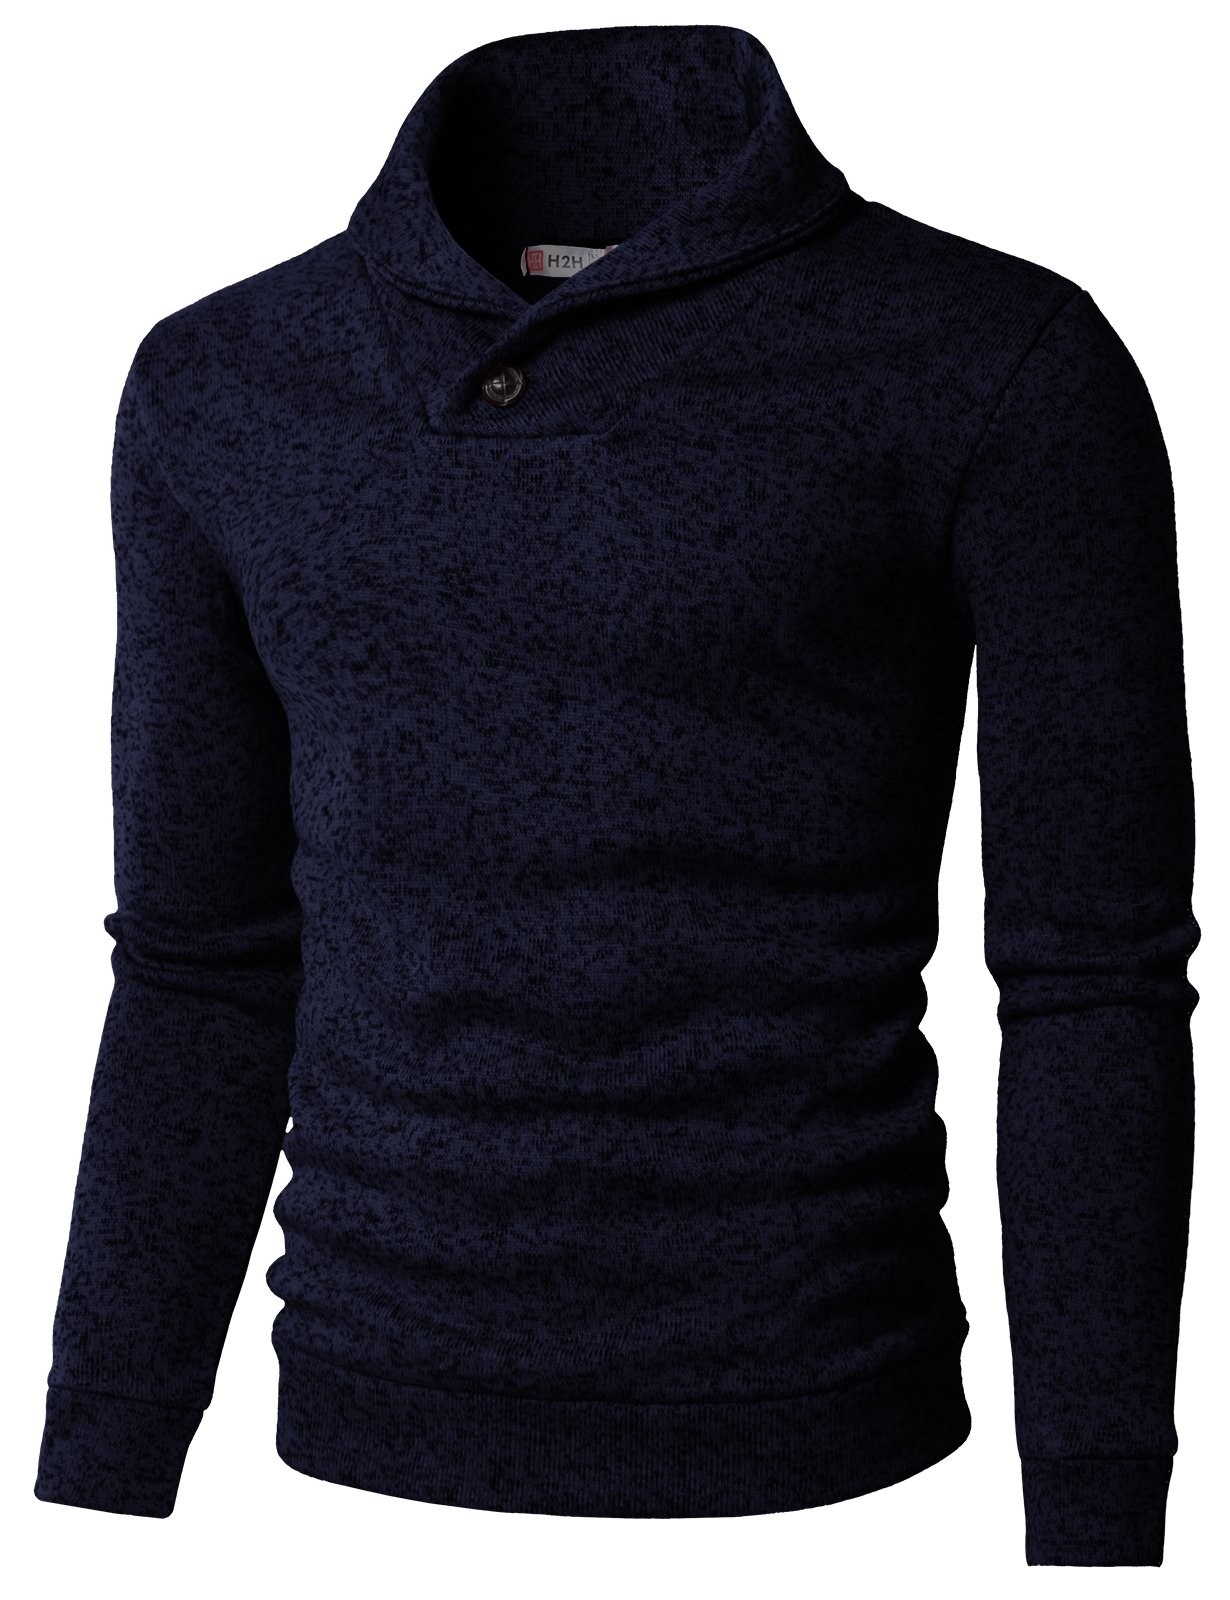 H2H Mens Knited Slim Fit Pullover Sweater Shawl Collar With One Button Point NAVY US L/Asia XL (KMOSWL036)